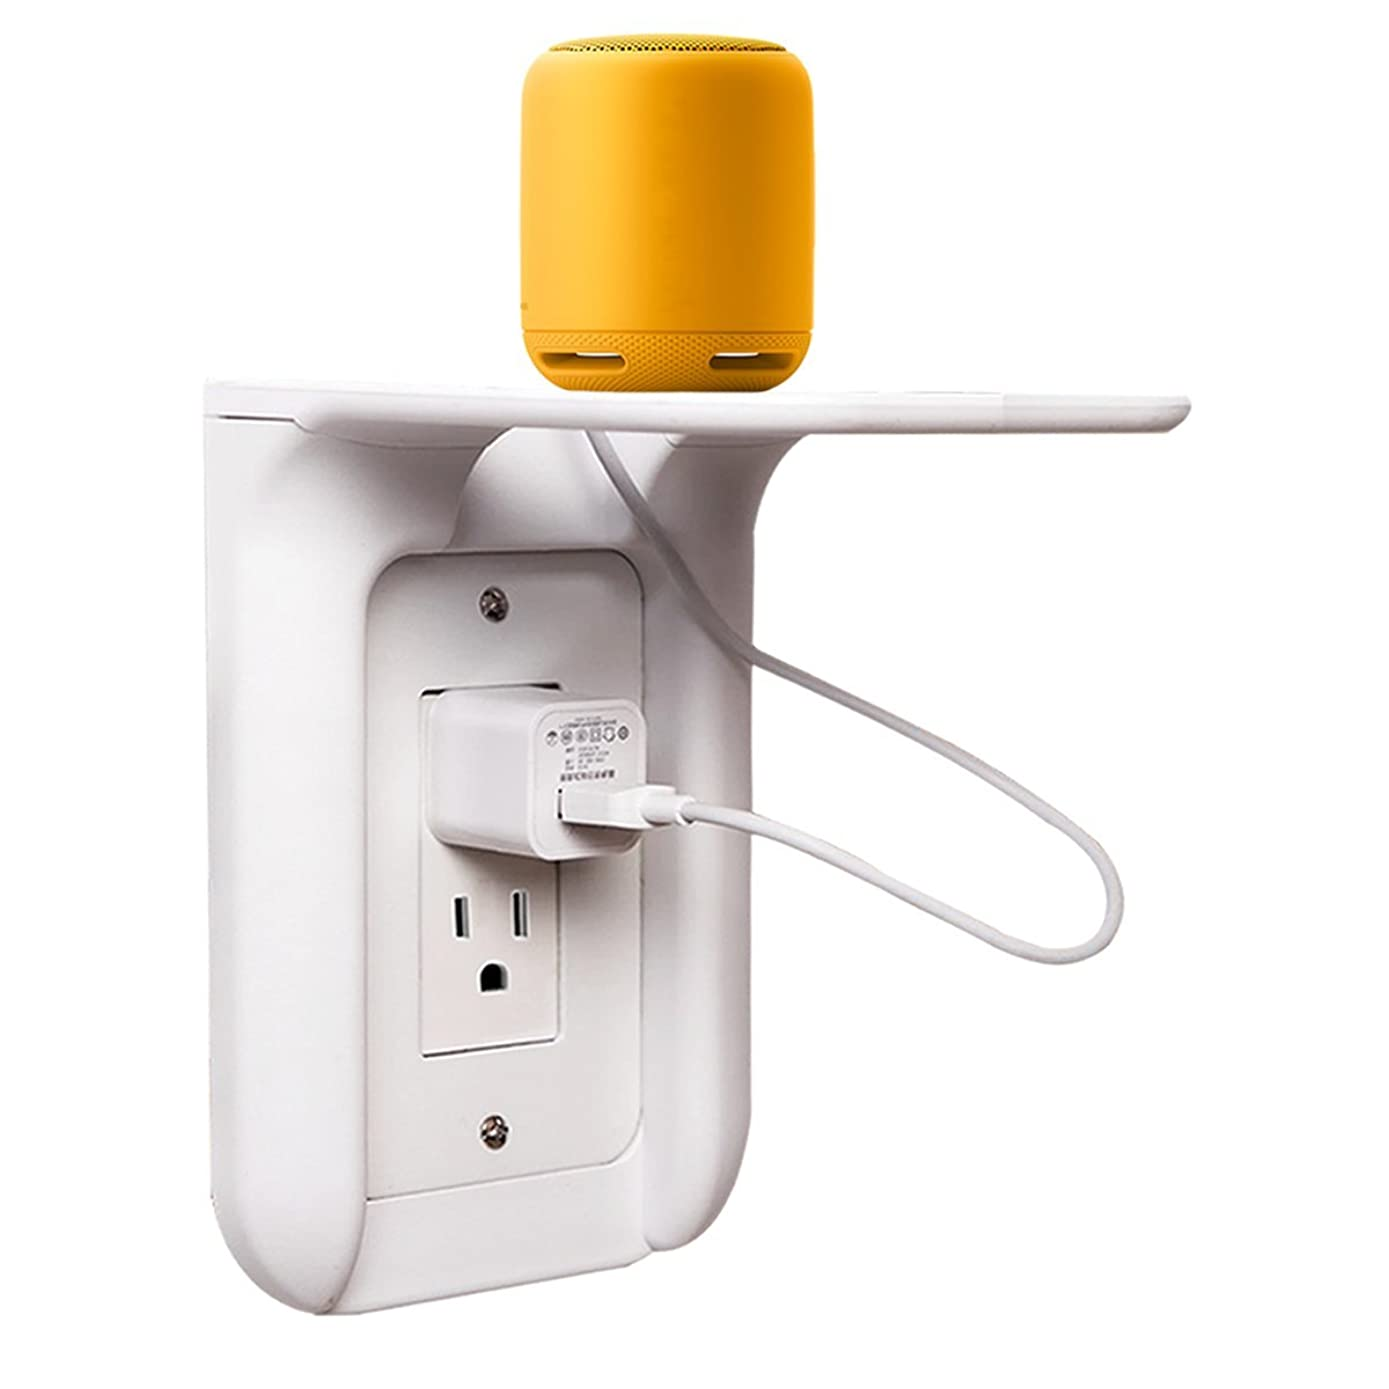 Okela Outlet Shelf Power Perch, Metal Outlet Cover and Plastic Face Plate, Charging Shelf for Devices up To 7 lbs Built in Cable Channel, like Smart Home Speakers Cell Phone etc.